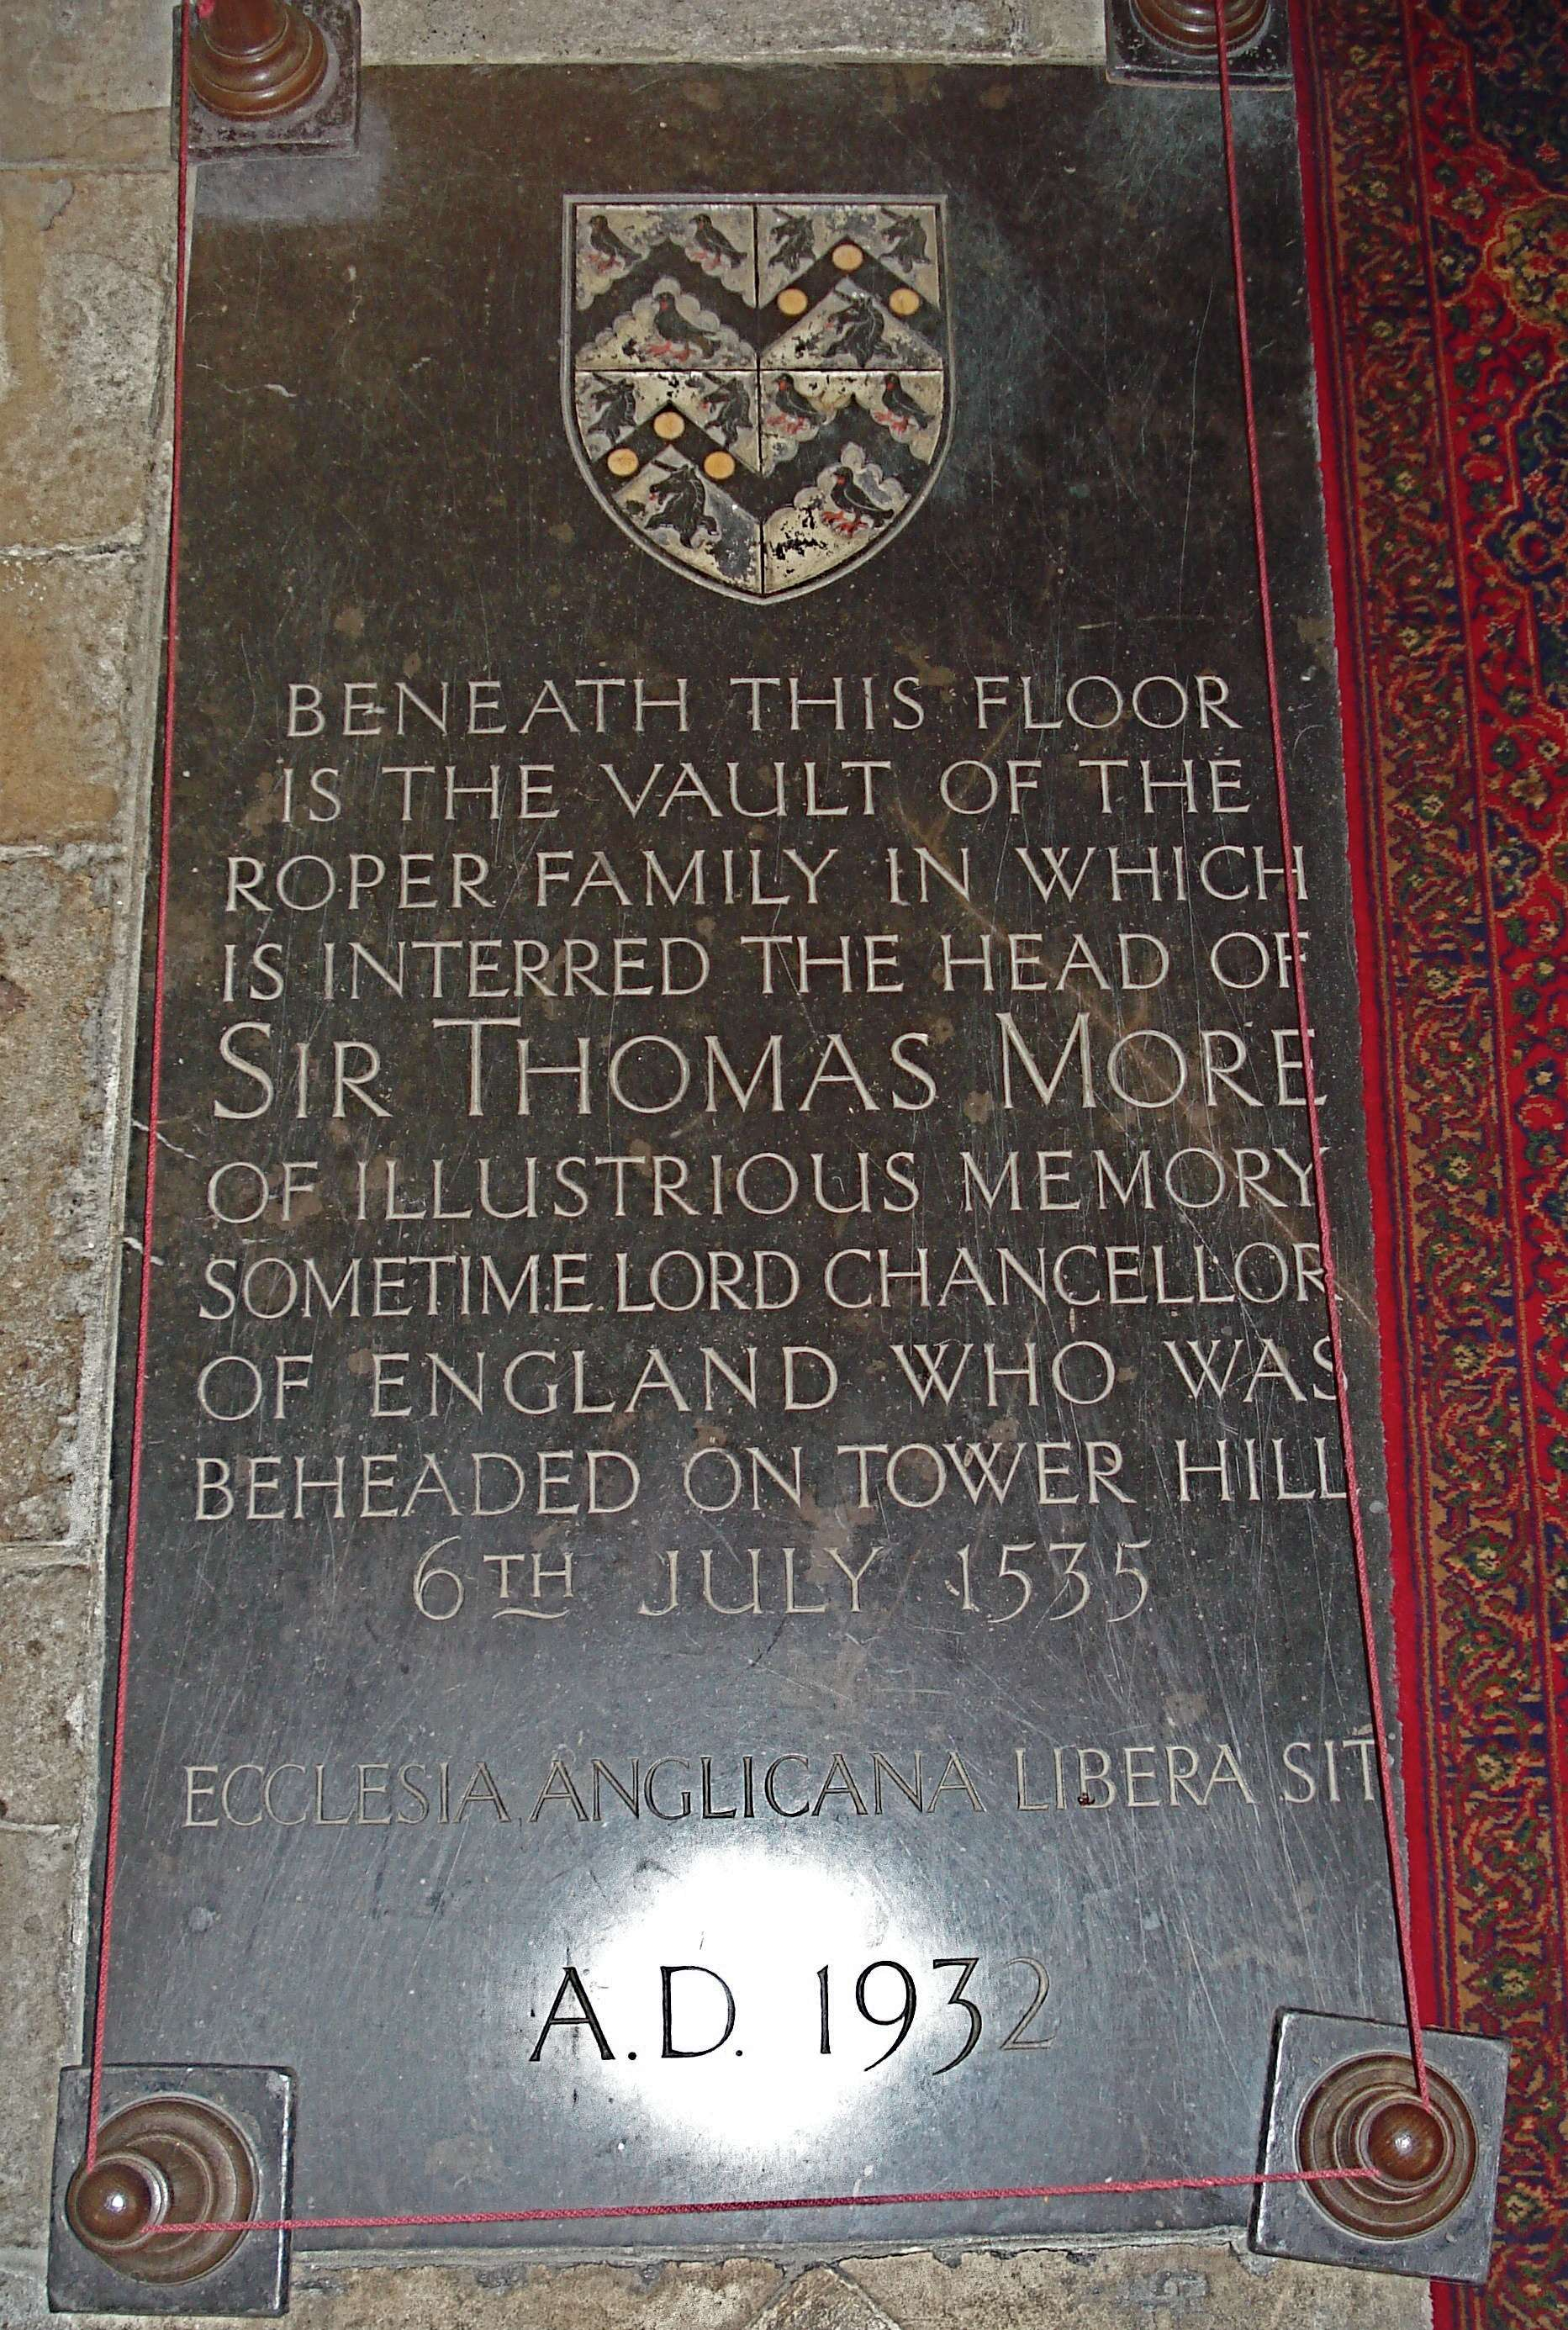 Sir_Thomas_More_family's_vault_in_St_Dunstan's_Church_(Canterbury)